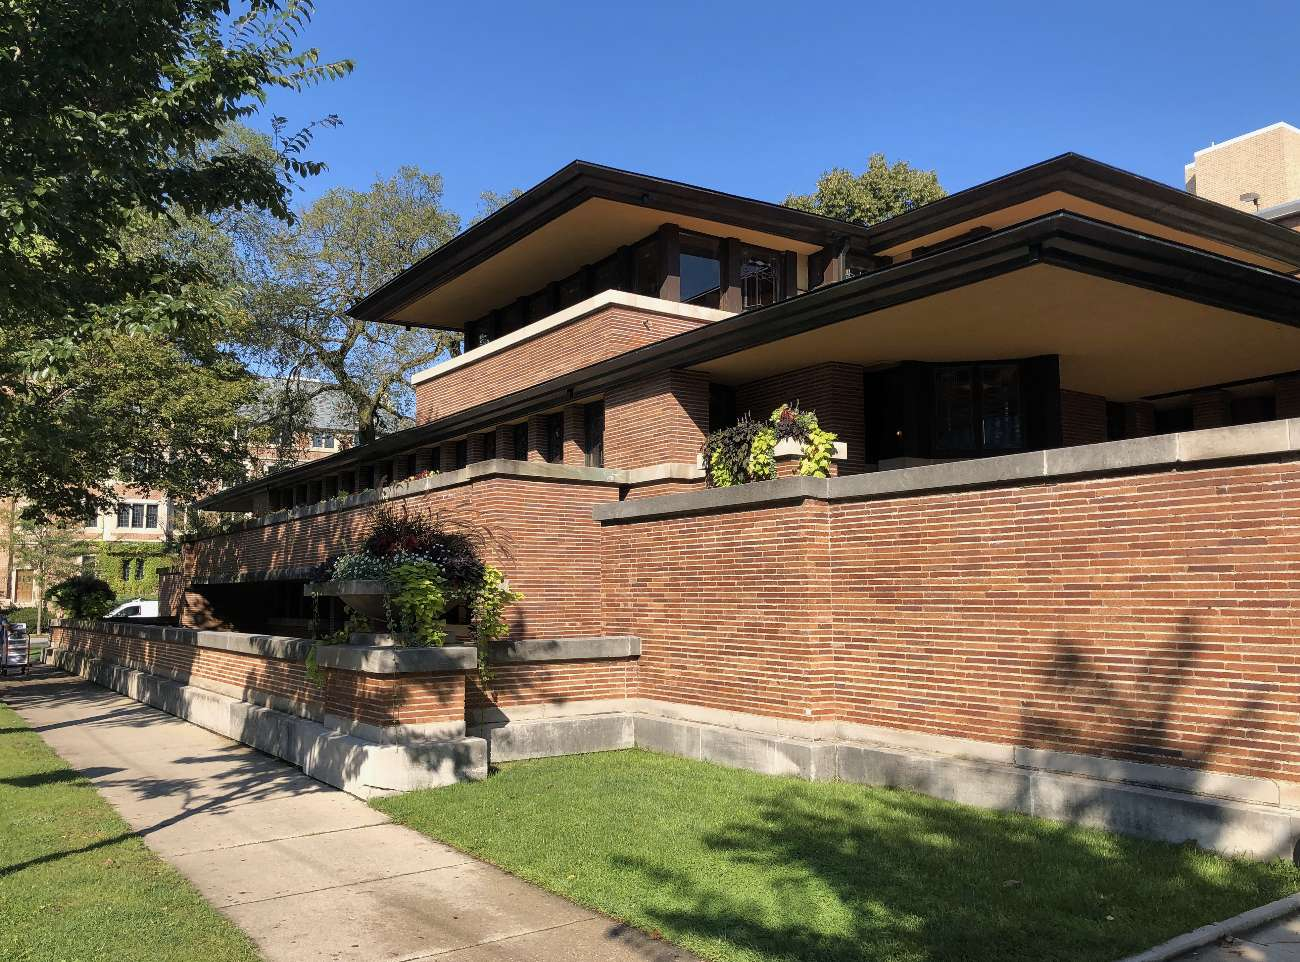 Robie House in der Chicago South Side von außen